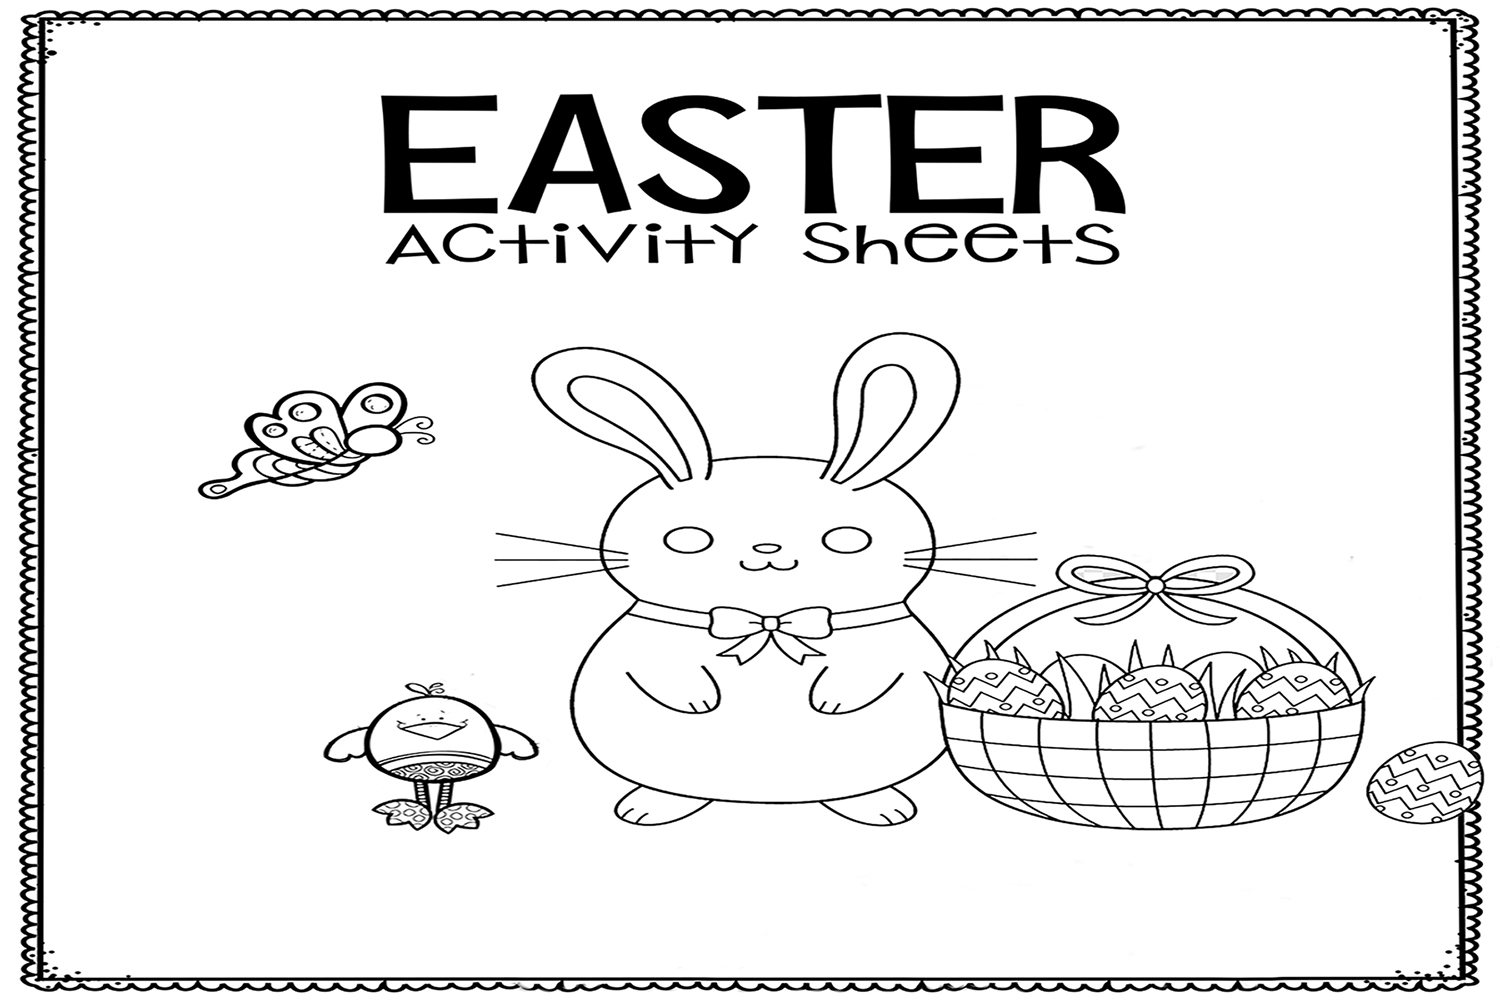 Free Printable Easter Egg Activity Sheets